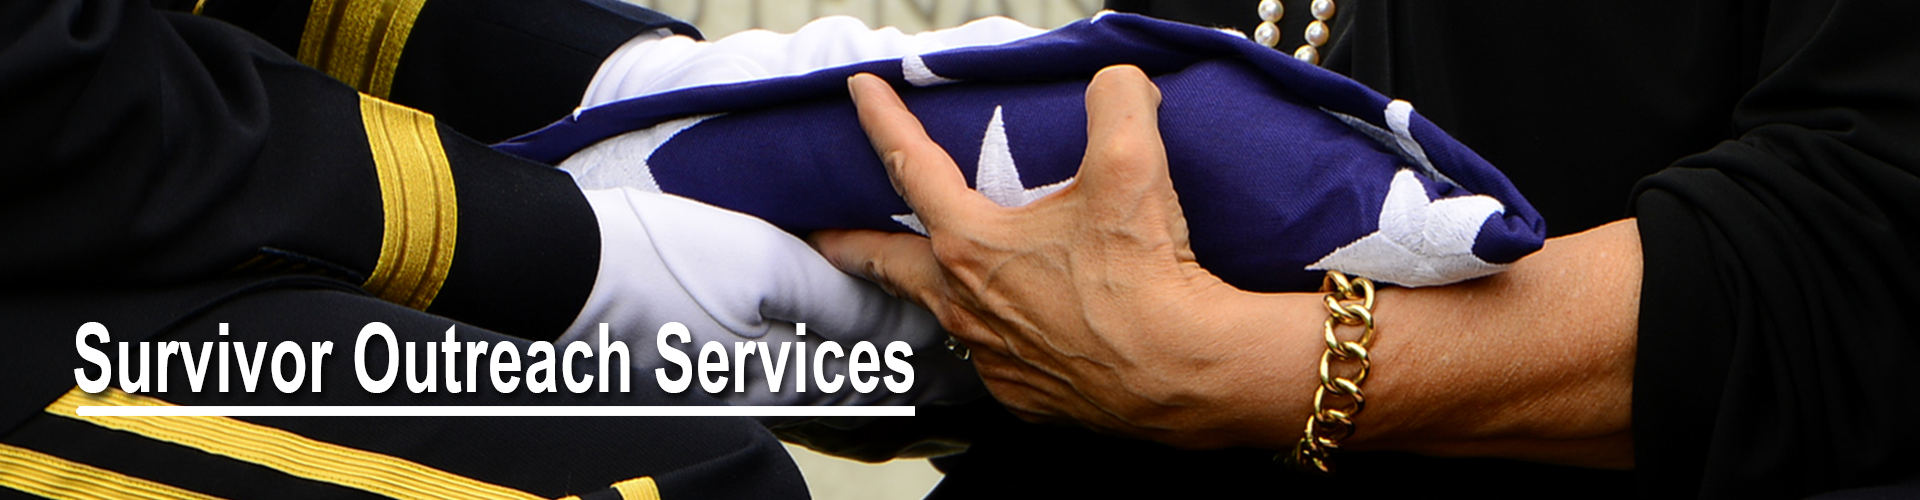 Header image- banner for the Survivor Outreach Services page